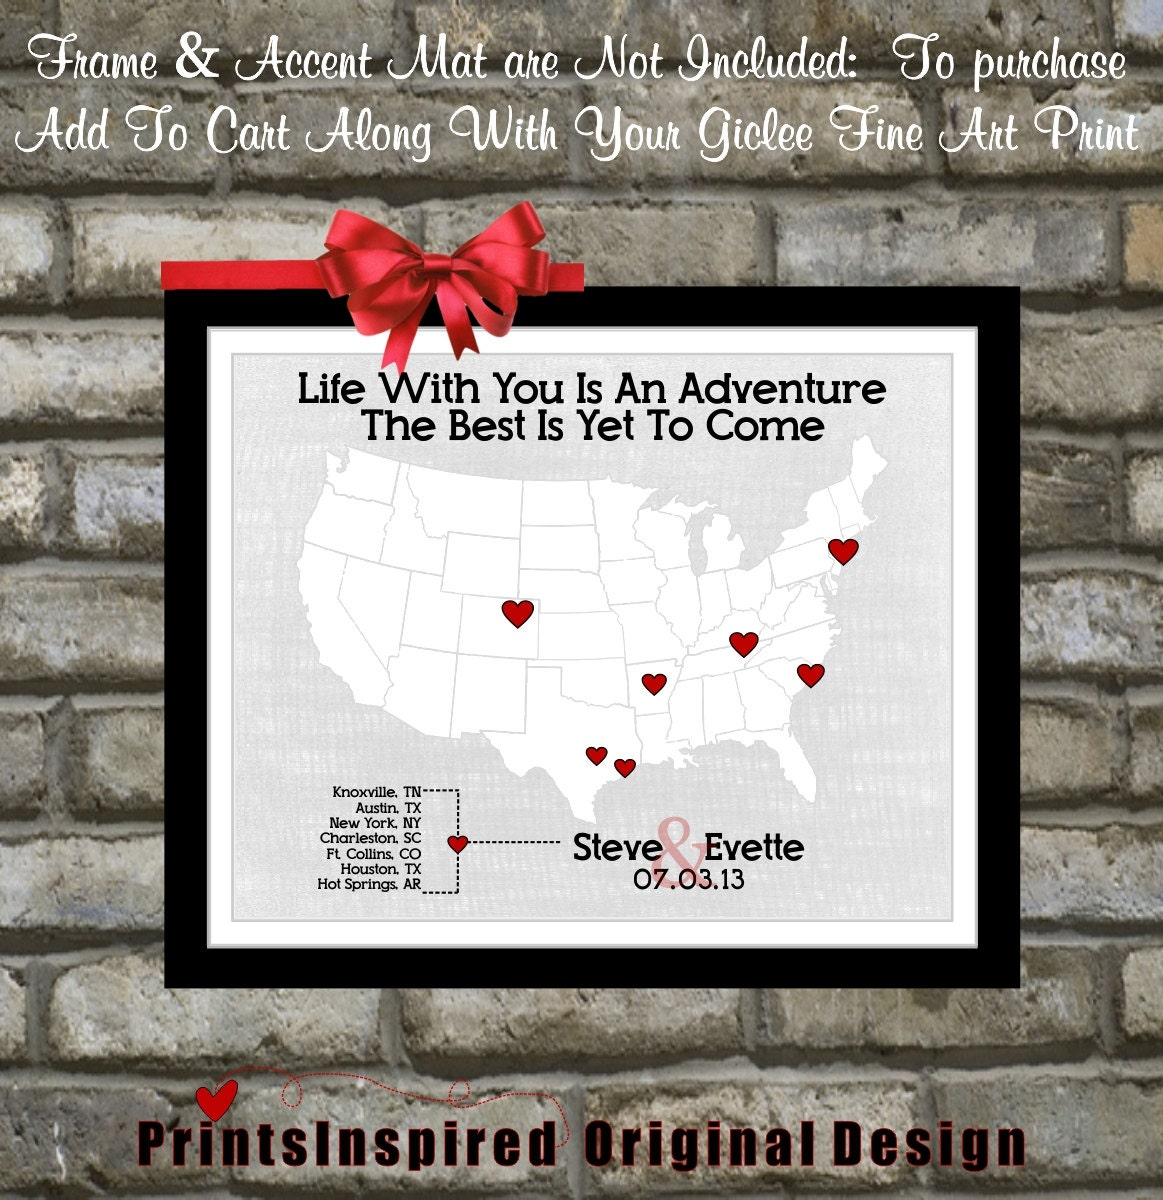 1st Wedding Anniversary Gifts Husband : Wedding Anniversary Gifts: Unique 1st Wedding Anniversary Gifts For ...